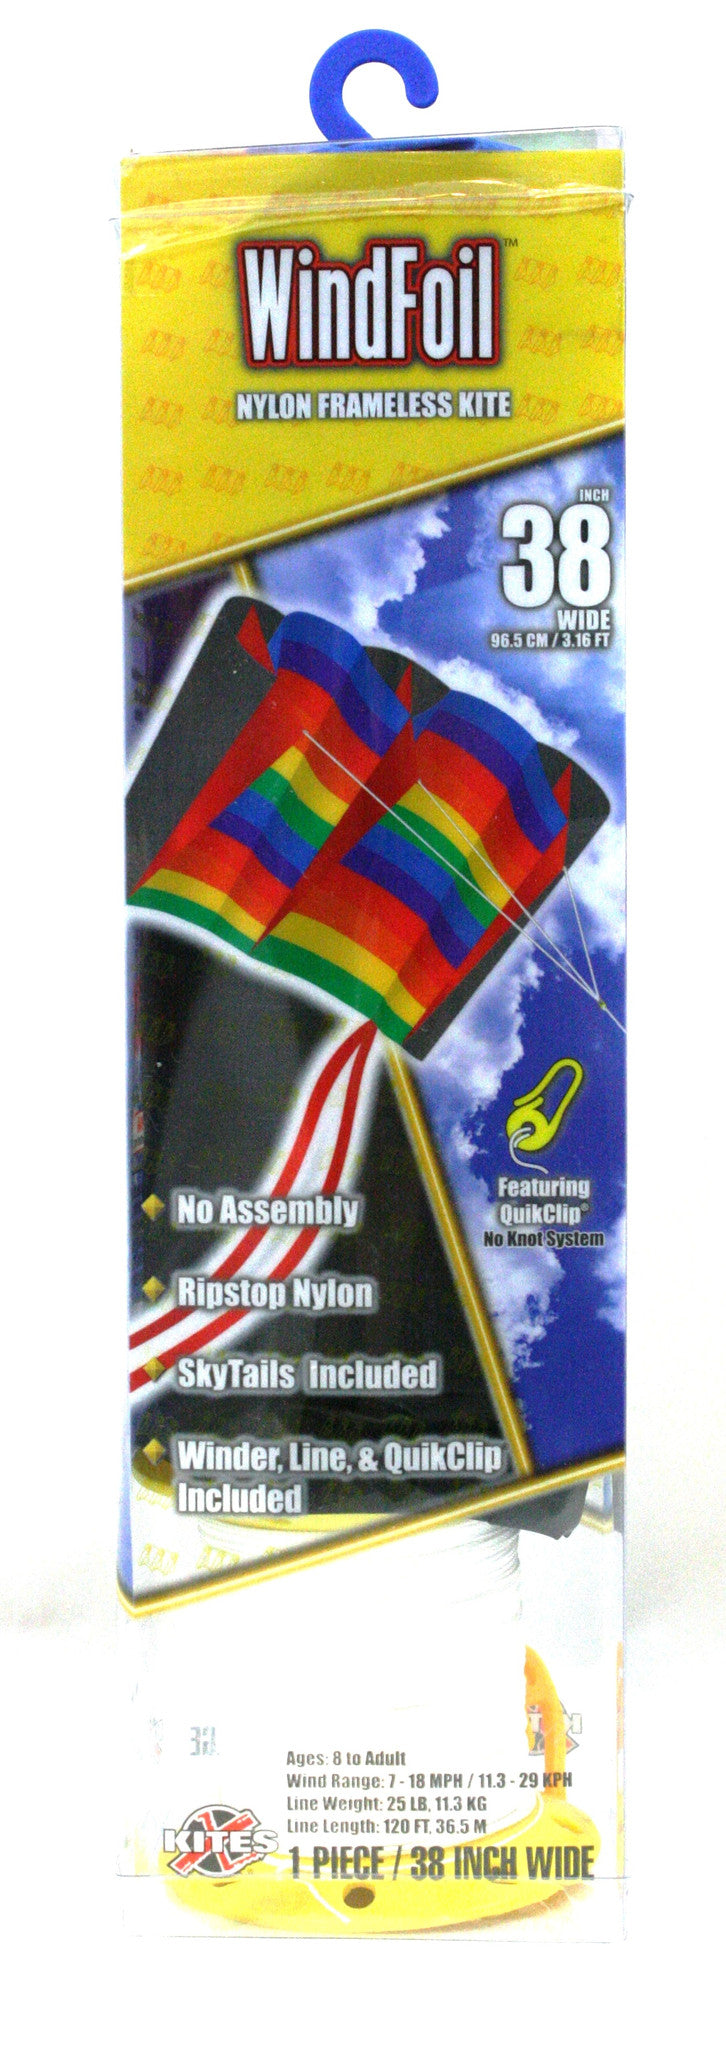 "38"" Windfoil Frameless Ripstop Nylon Kite by X-Kites - Rainbow Stripes - Off The Wall Toys and Gifts"